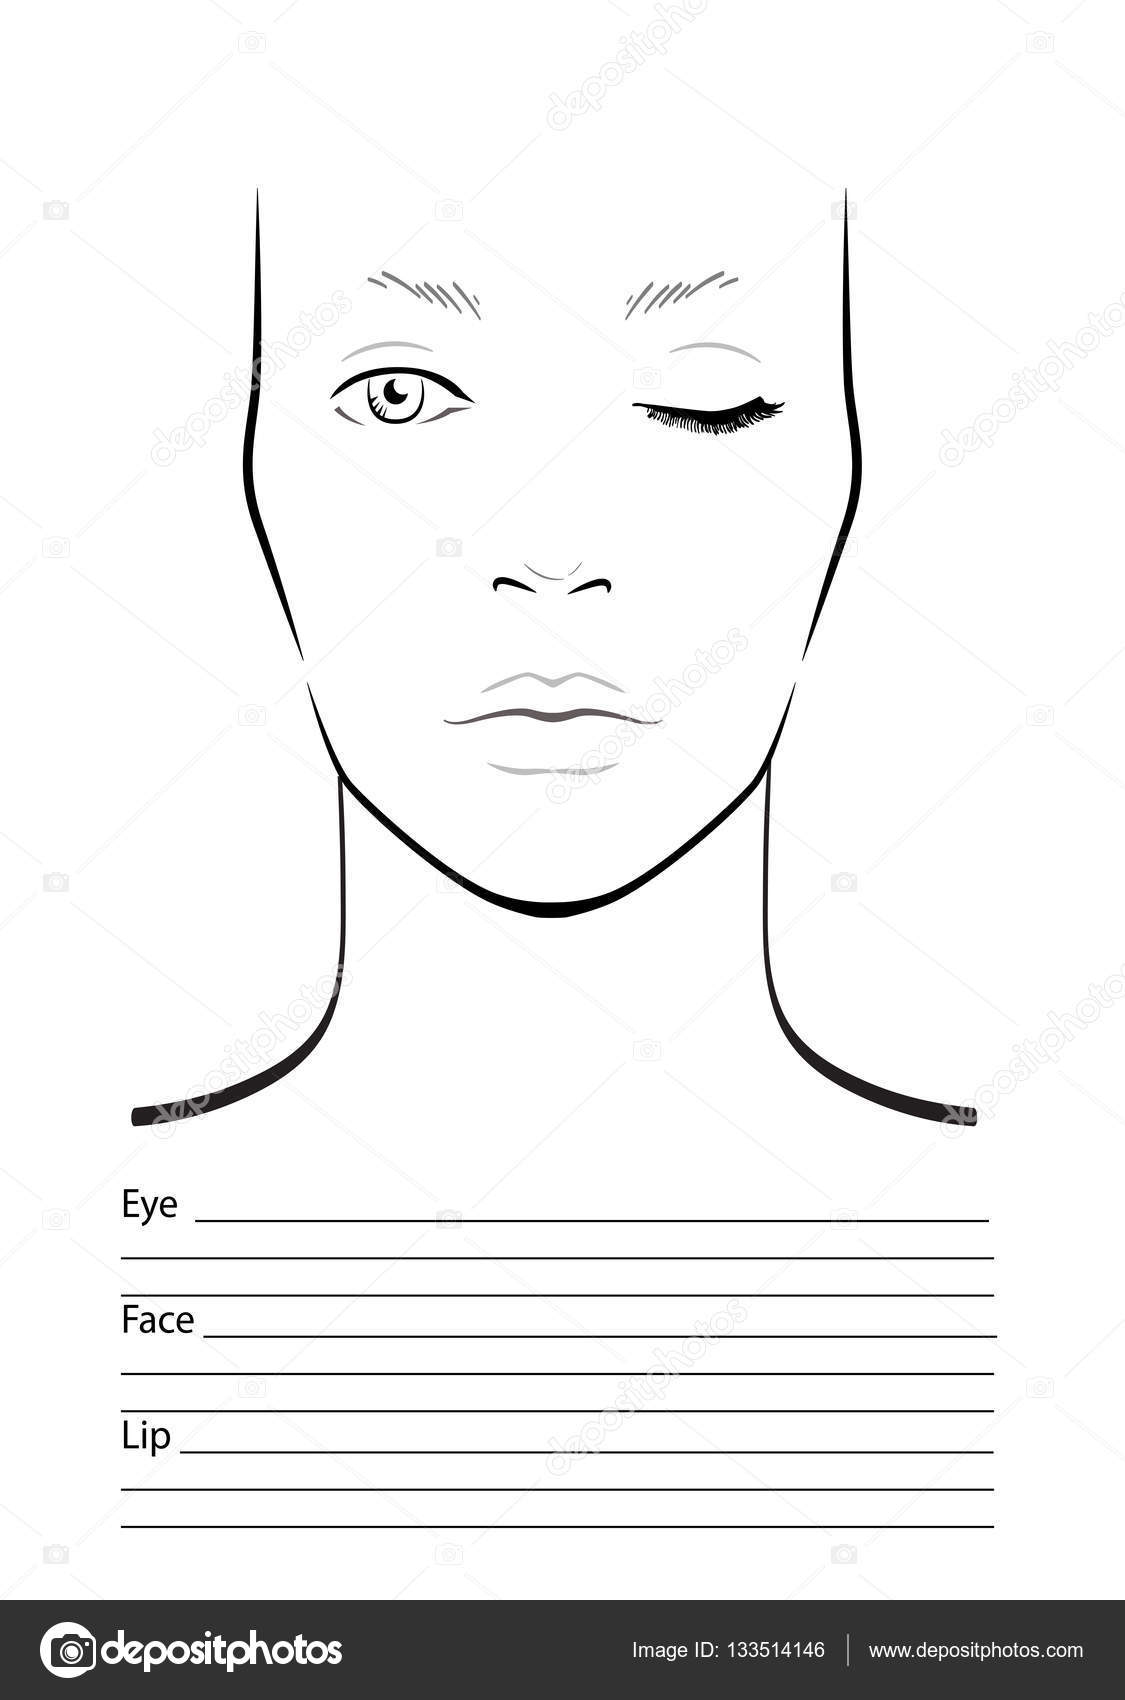 Face diagram smink mvsz res sablon vektoros illusztrci face diagram smink mvsz res sablon vektoros illusztrci stock vector pooptronica Image collections